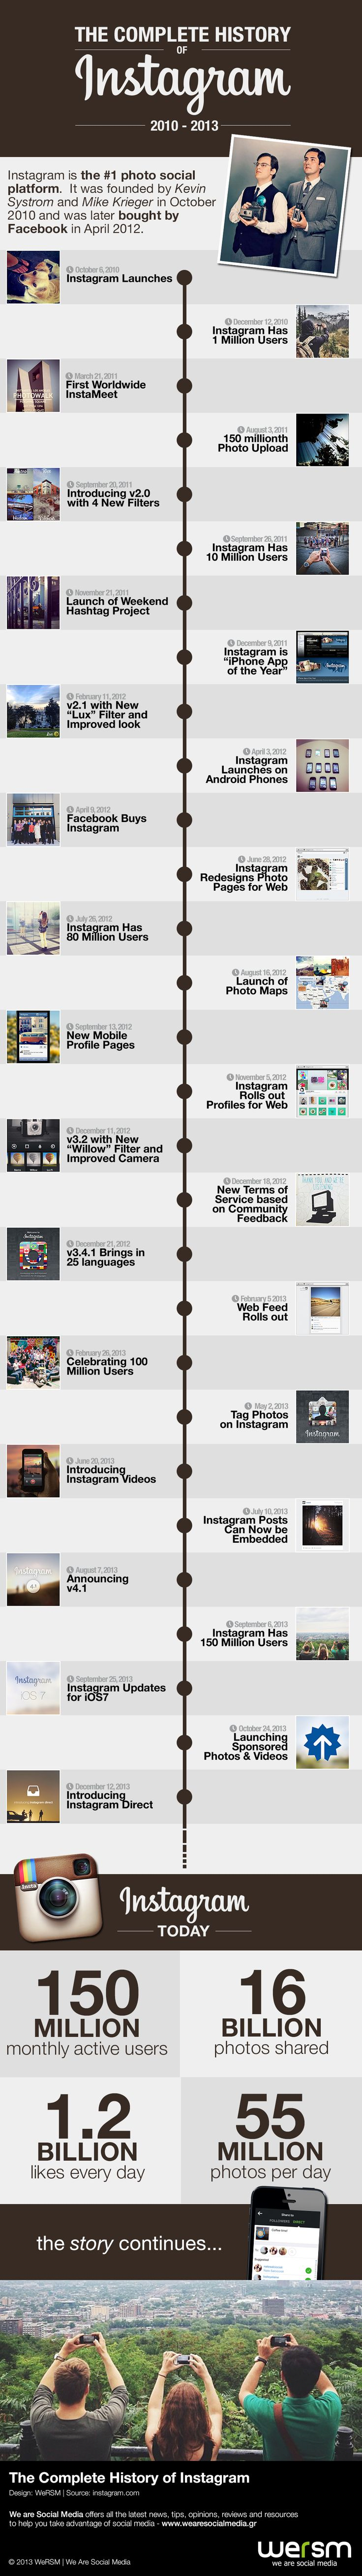 The Complete History of #Instagram - #infographic #socialmedia #history #infografía